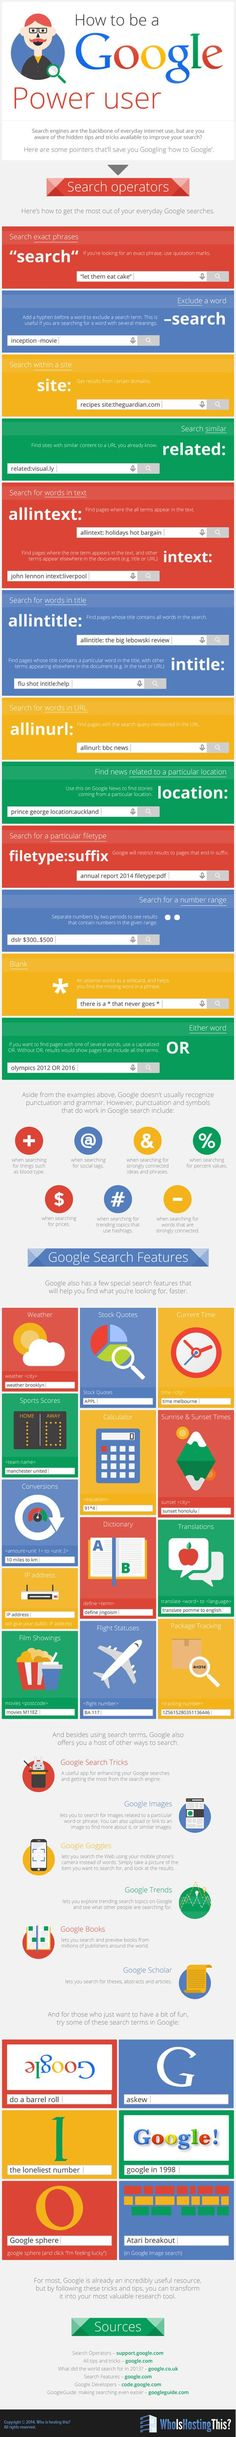 25 Google Search tricks you won't know how you ever lived without - Yahoo News